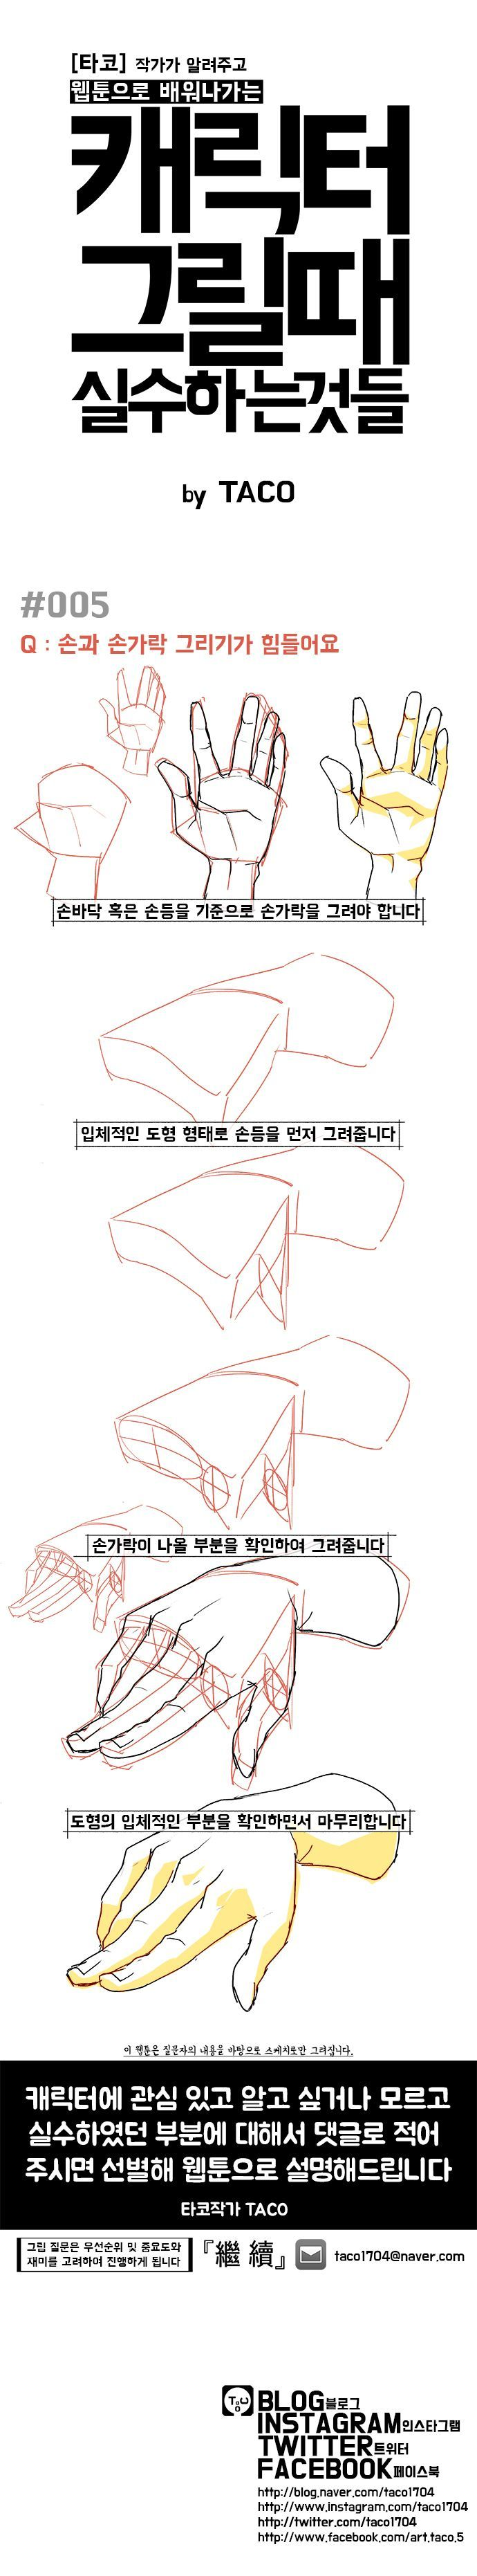 comic content - How to draw a hand step by step - human anatomy - drawing reference